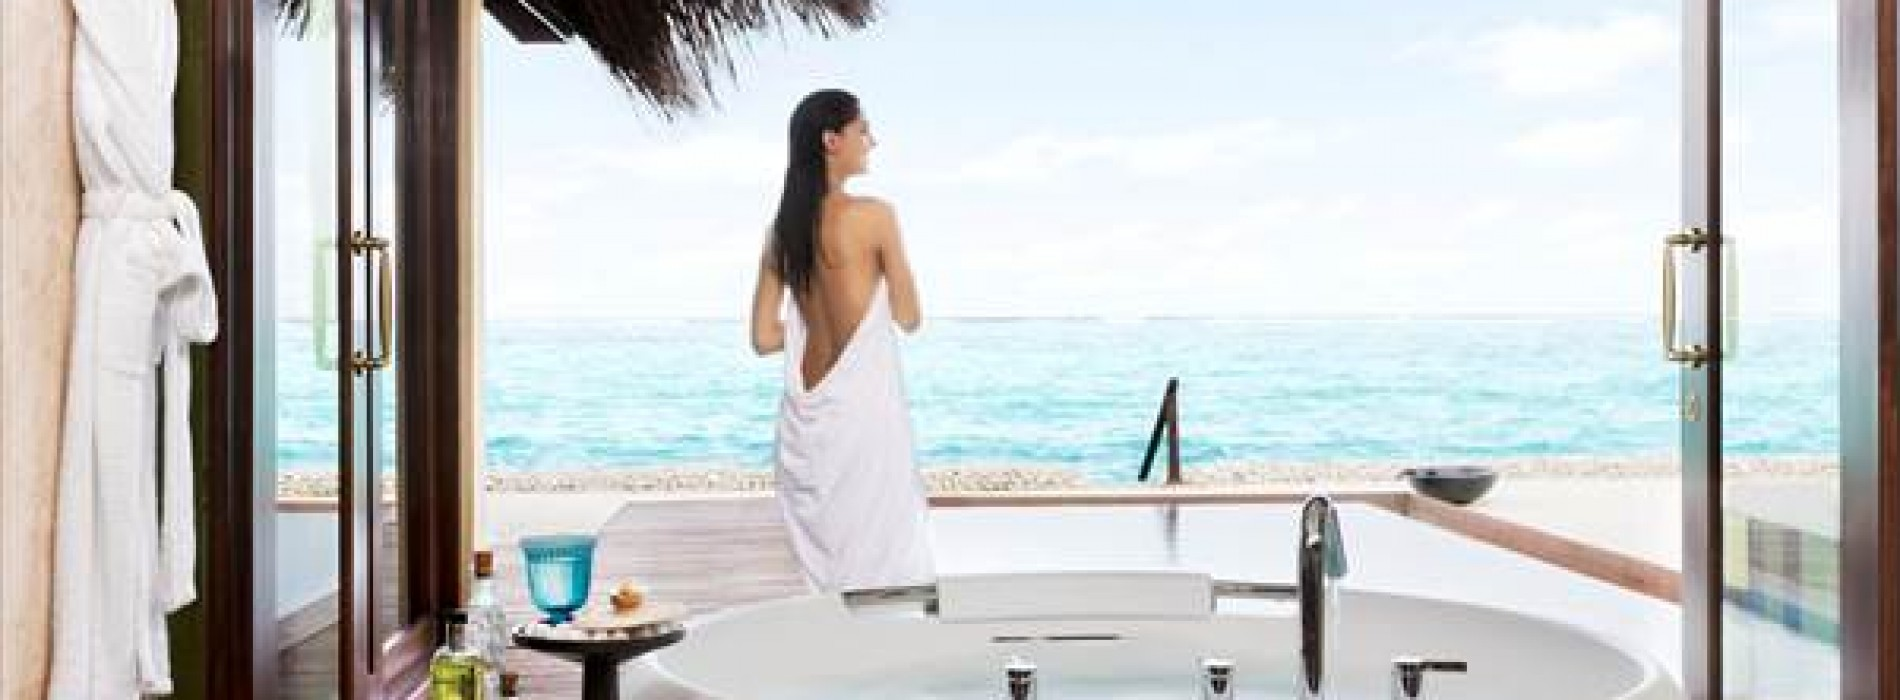 Taj Exotica Resort & Spa Maldives introduces wellness offers for Summer